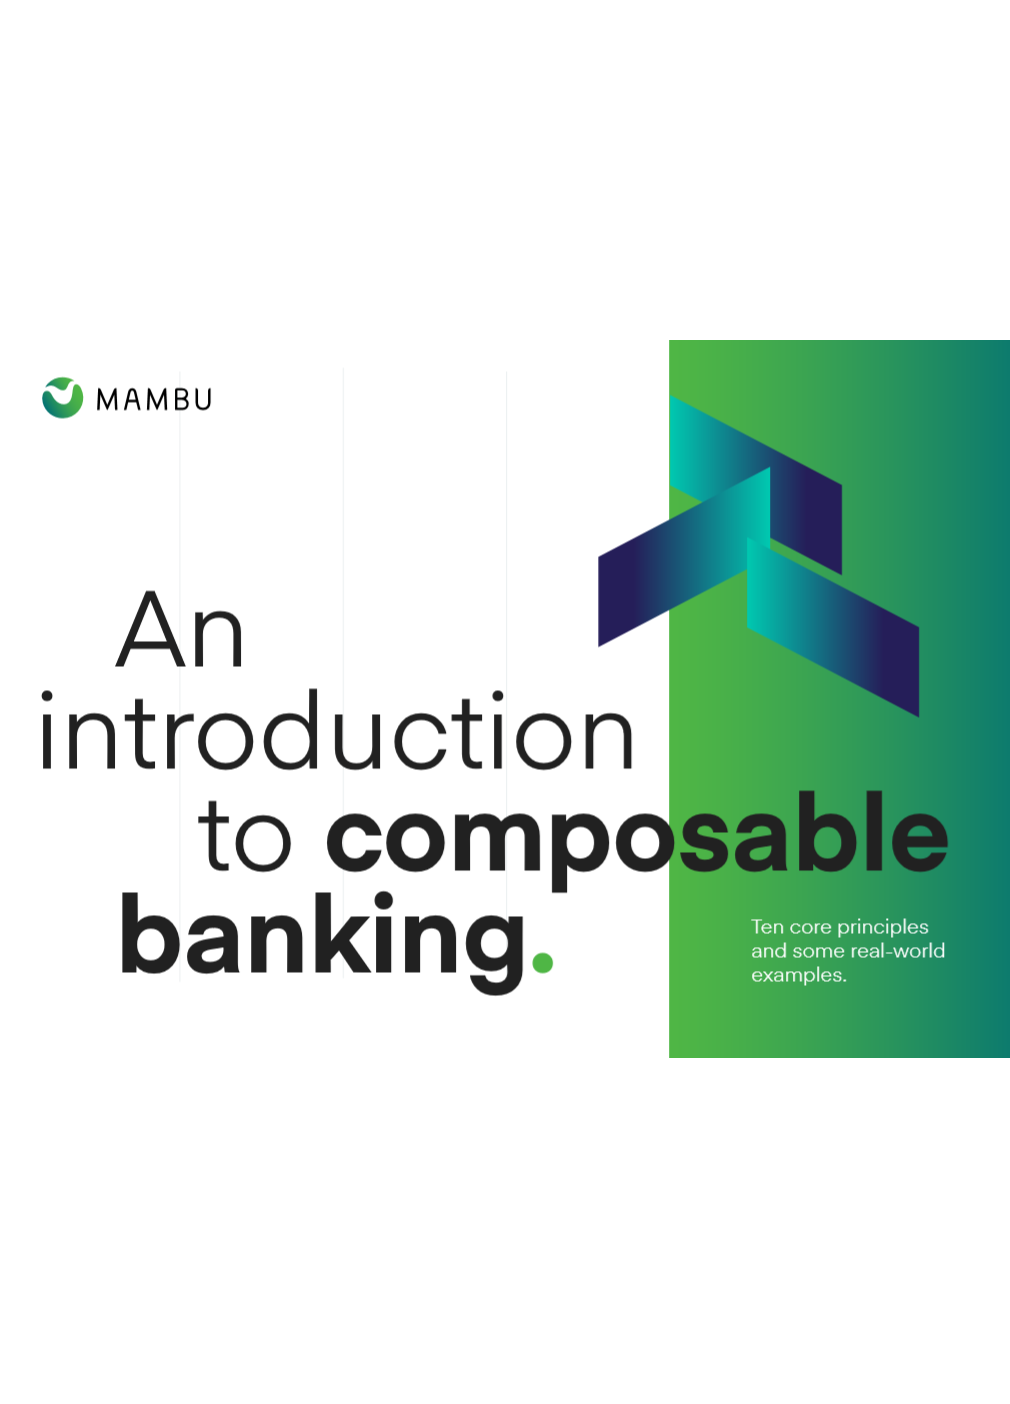 Une introduction au composable banking